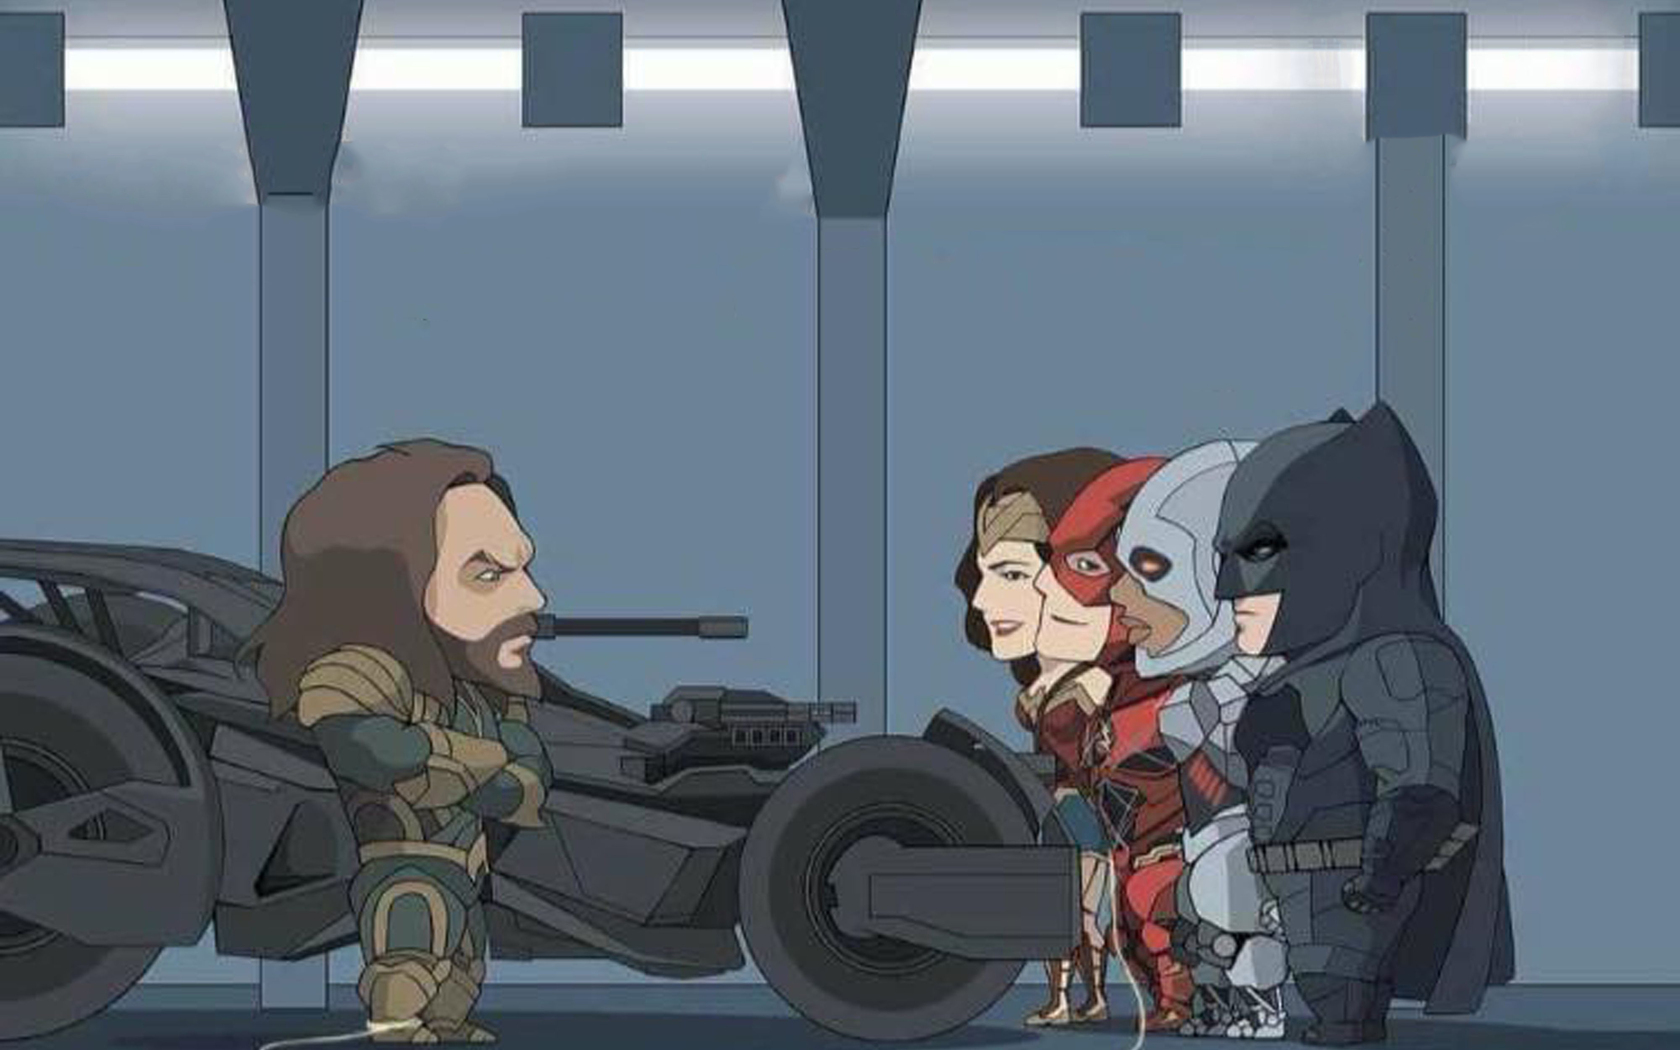 justice-league-aquaman-batman-wonder-woman-flash-artwork-m4.jpg